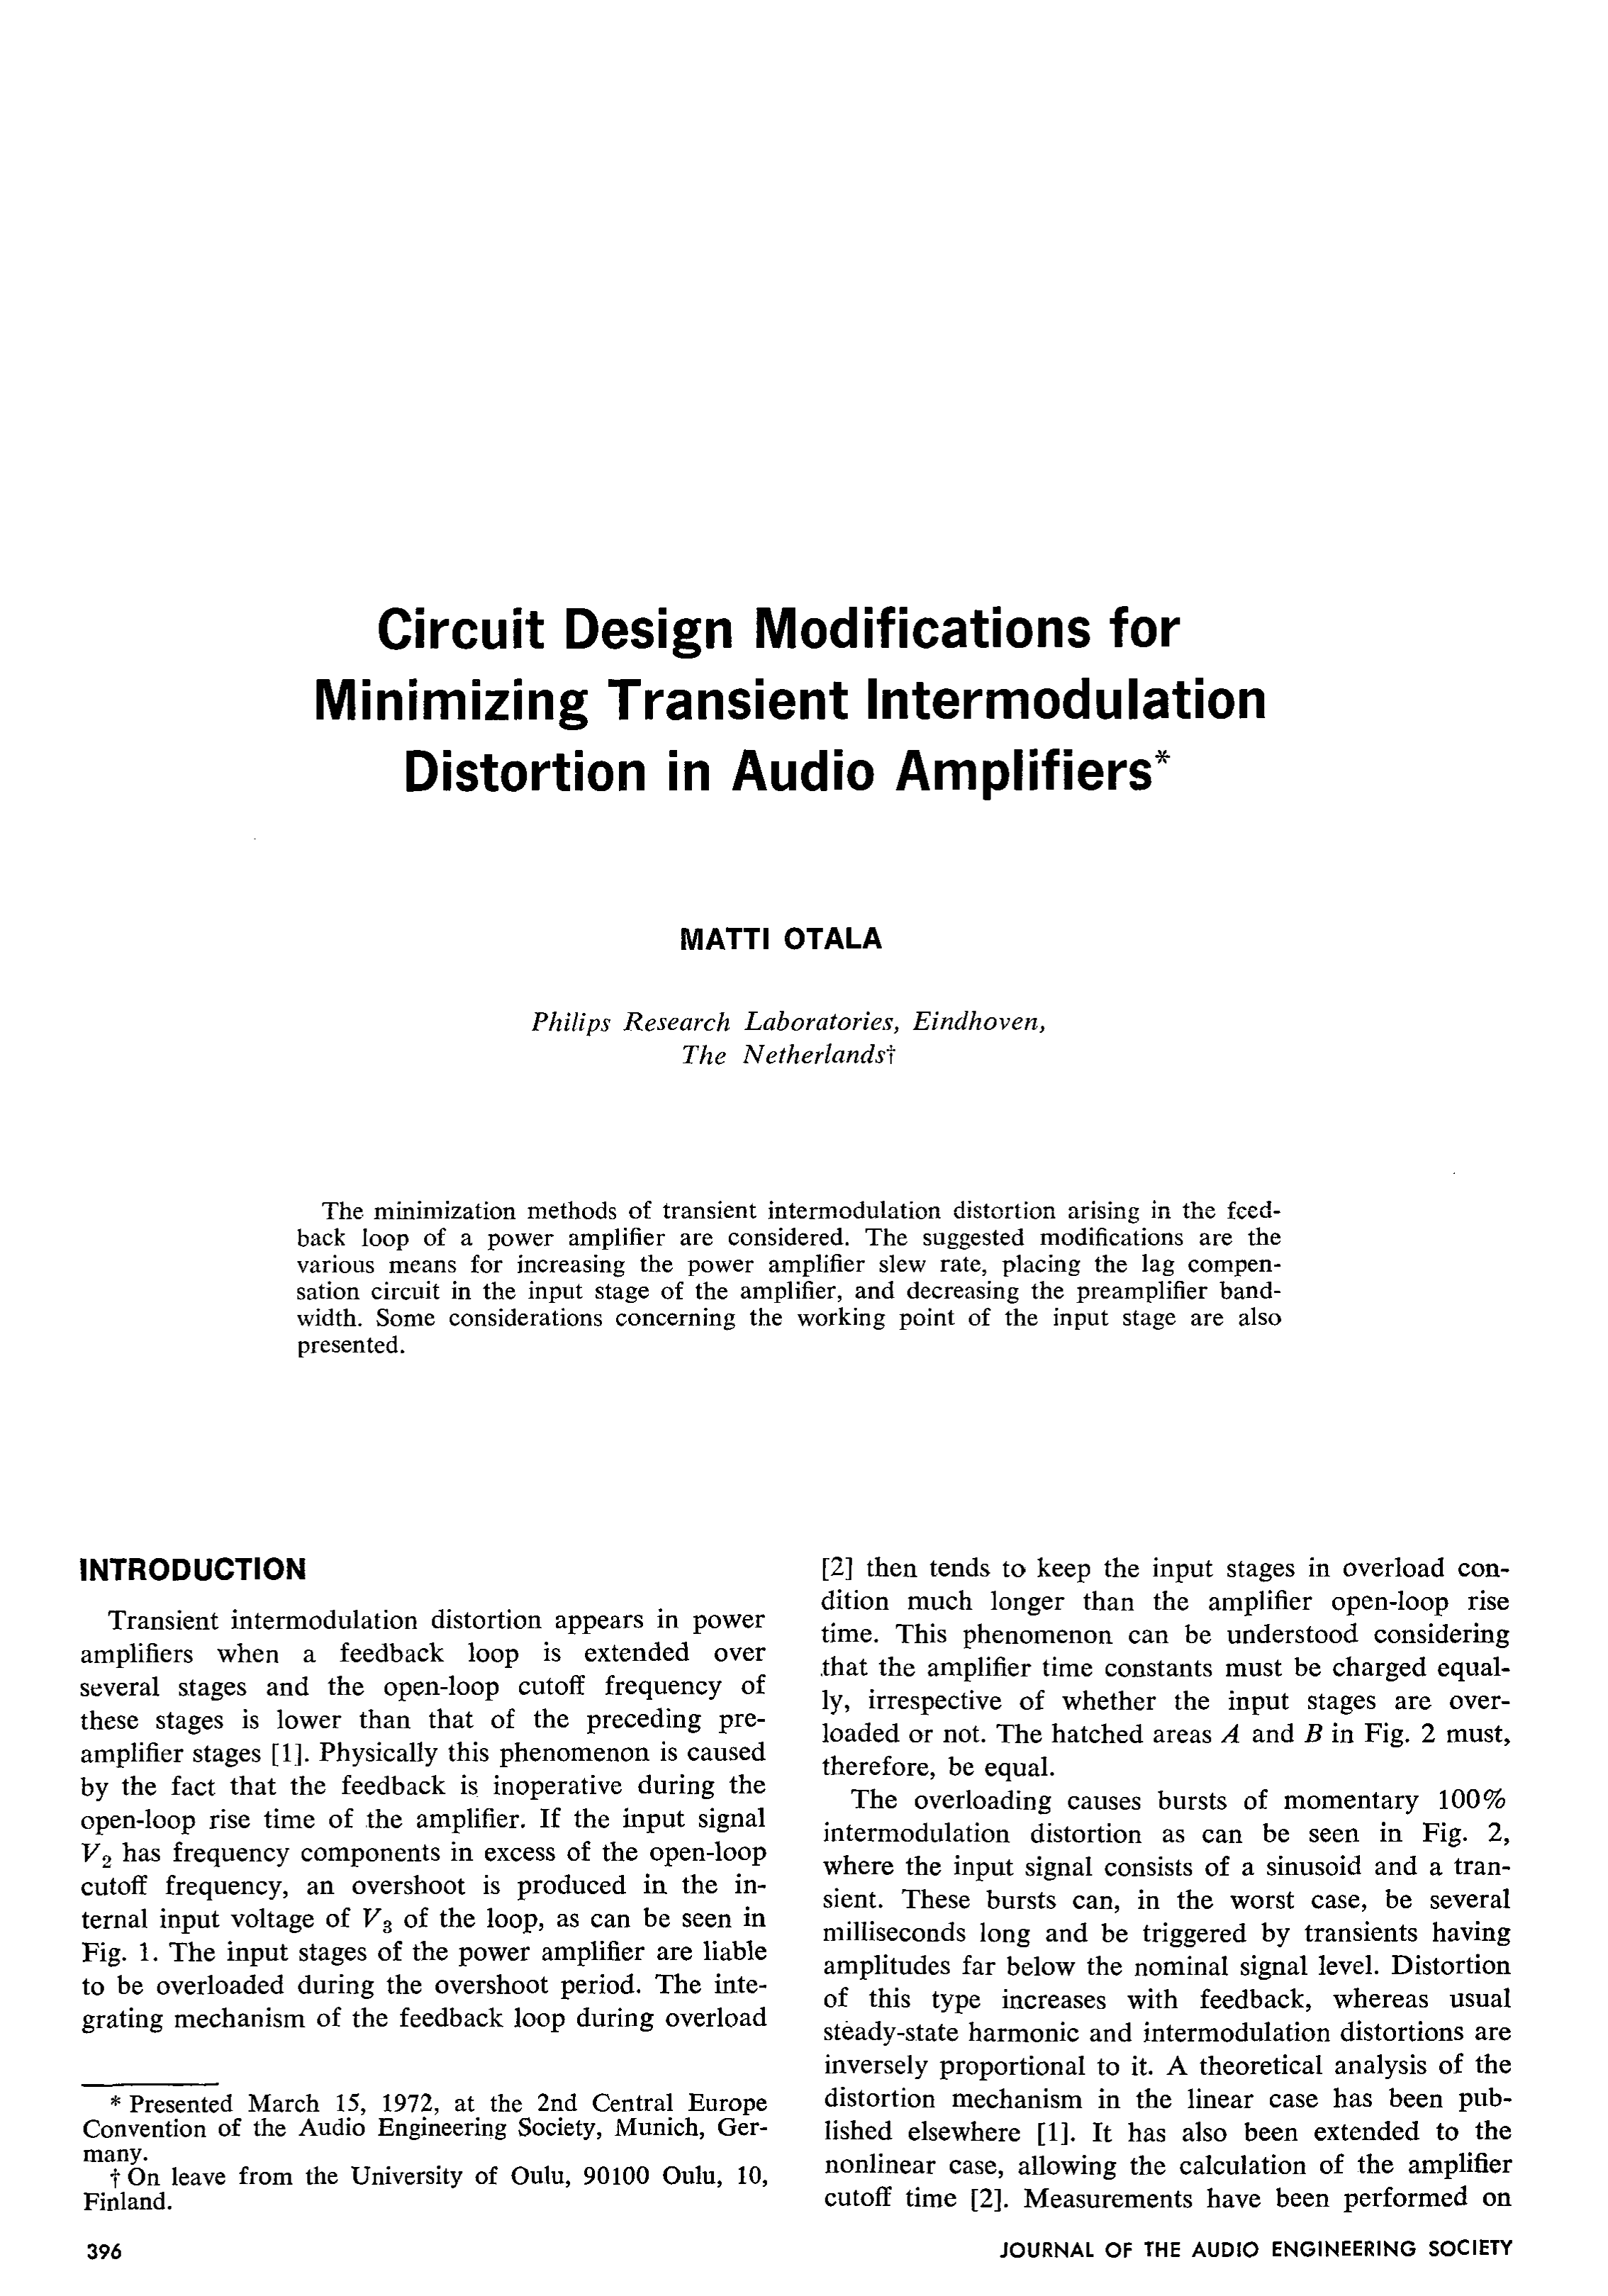 Aes E Library Circuit Design Modifications For Minimizing The Transformerless Mains High Low Voltage Cut Off Version Of Transient Intermodulation Distortion In Audio Amplifiers